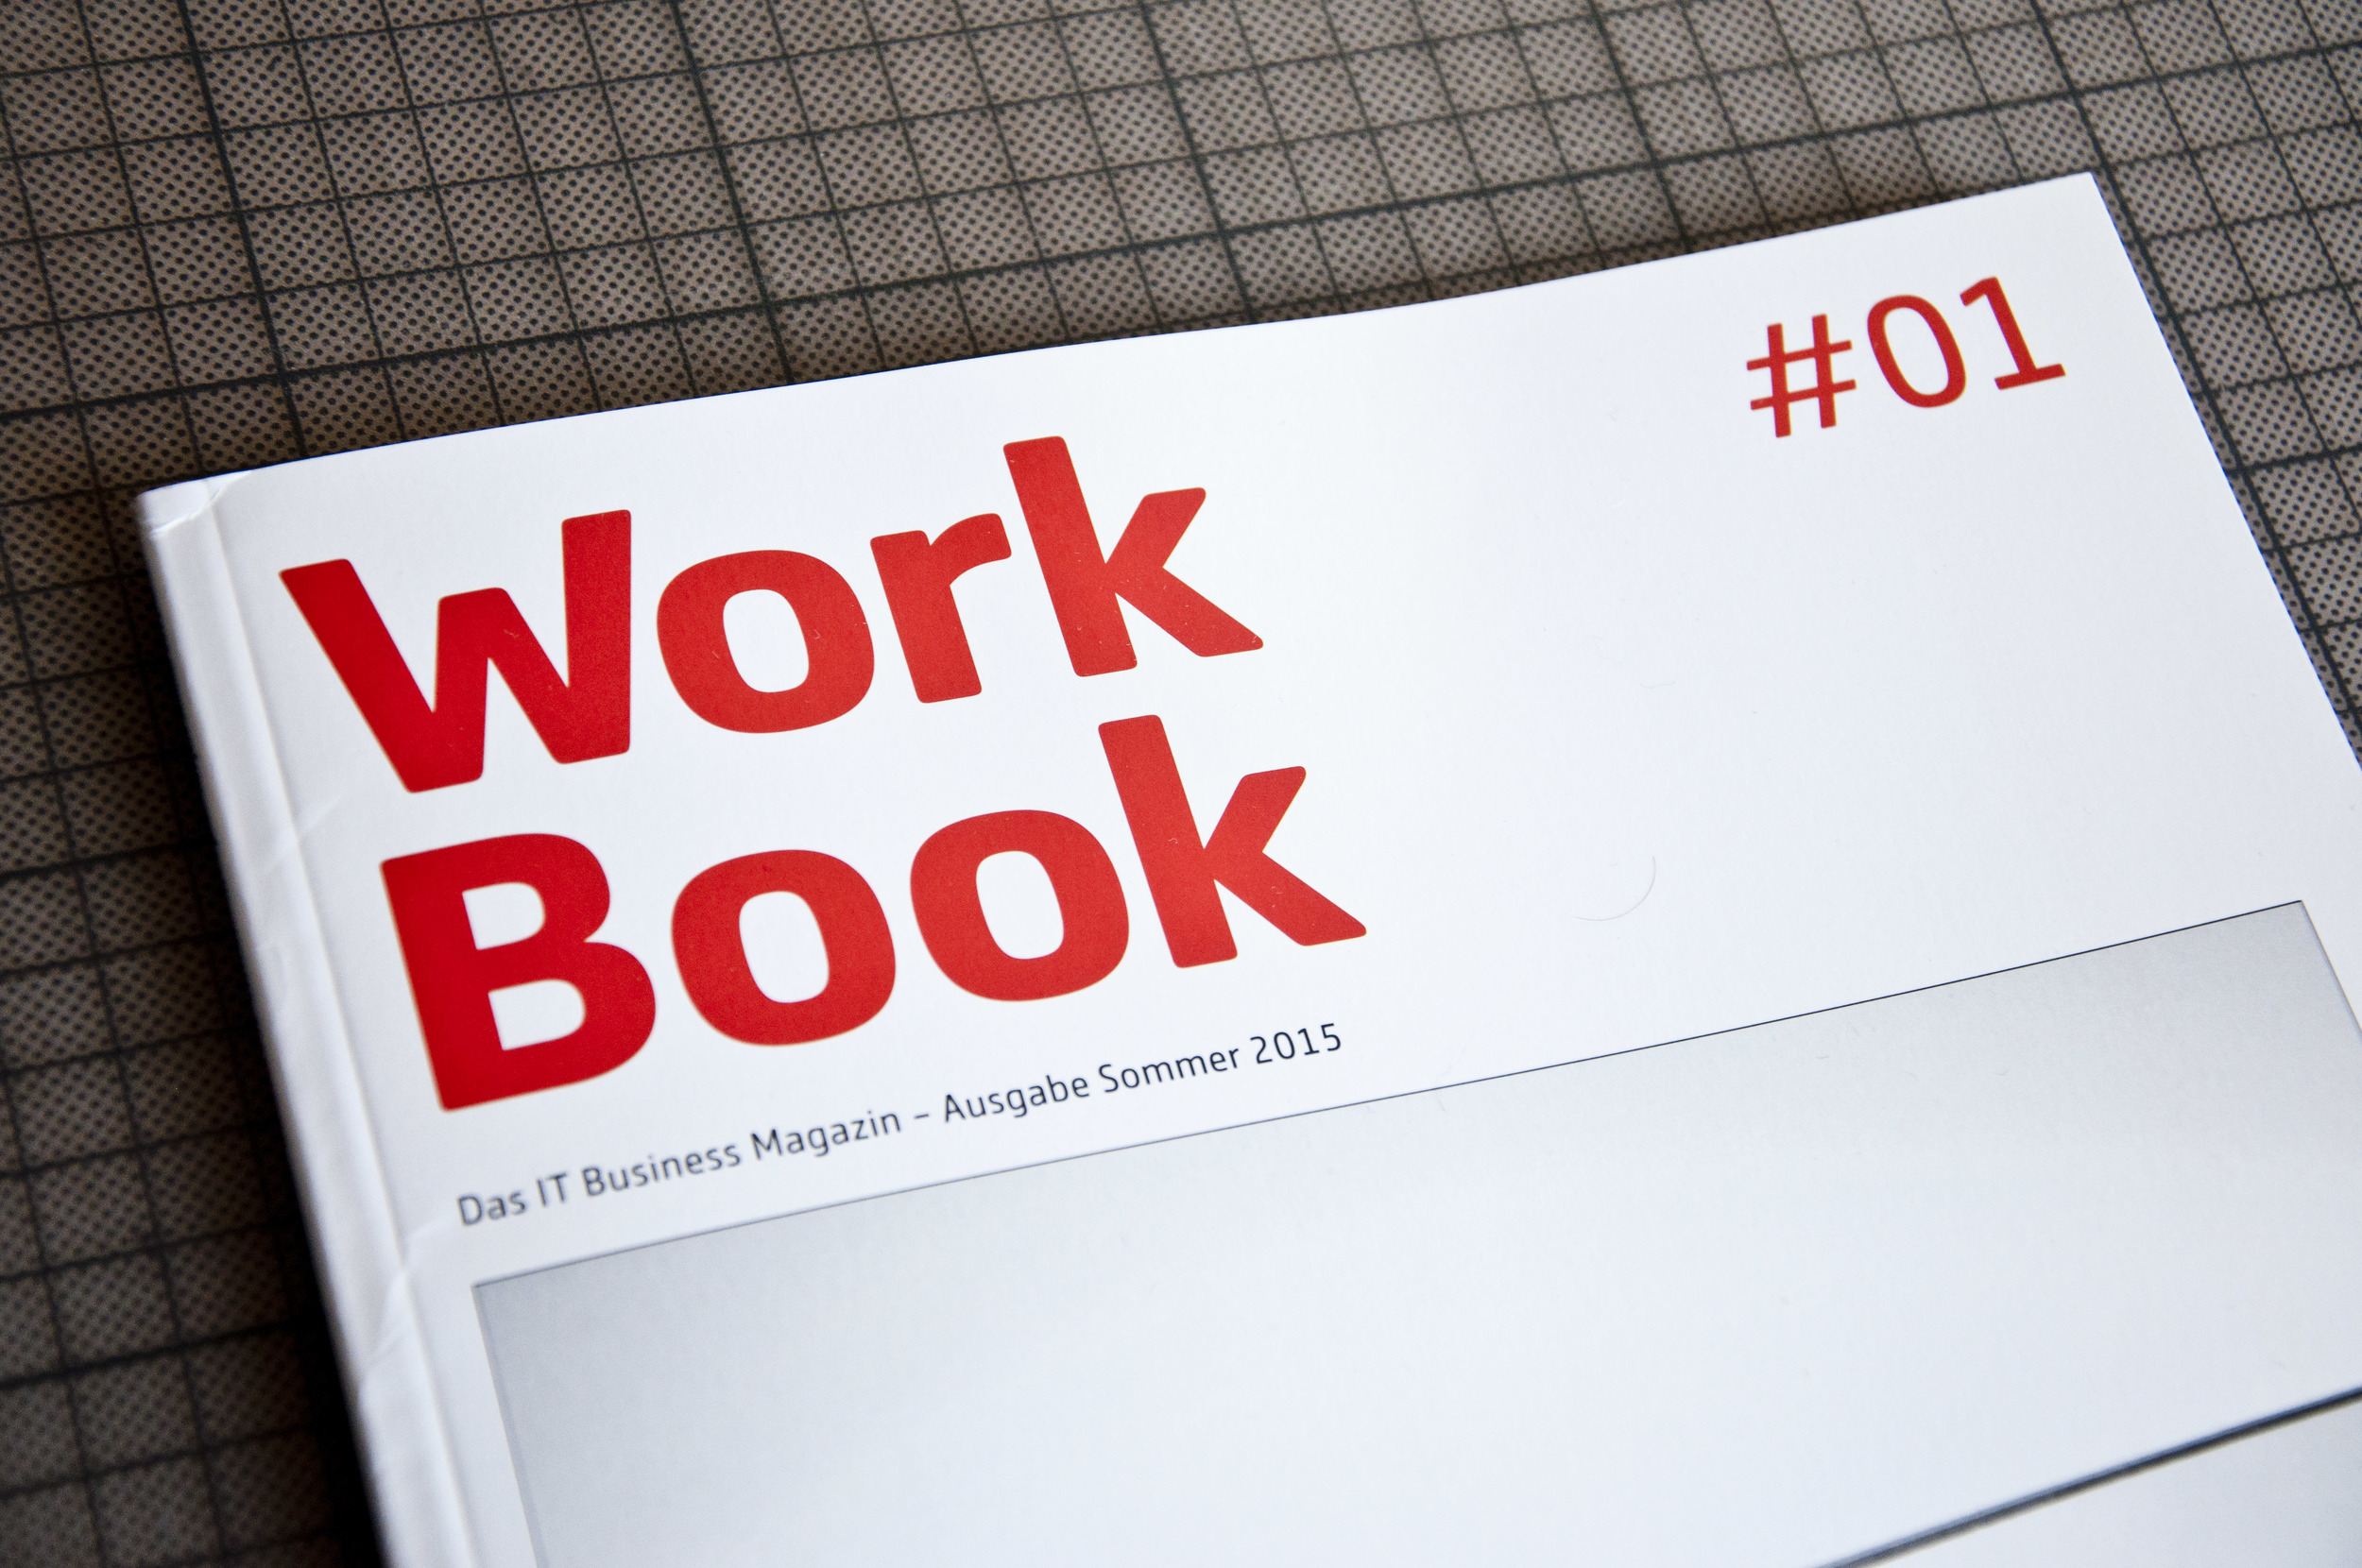 2015_WorkBook_Comspot_03.jpg